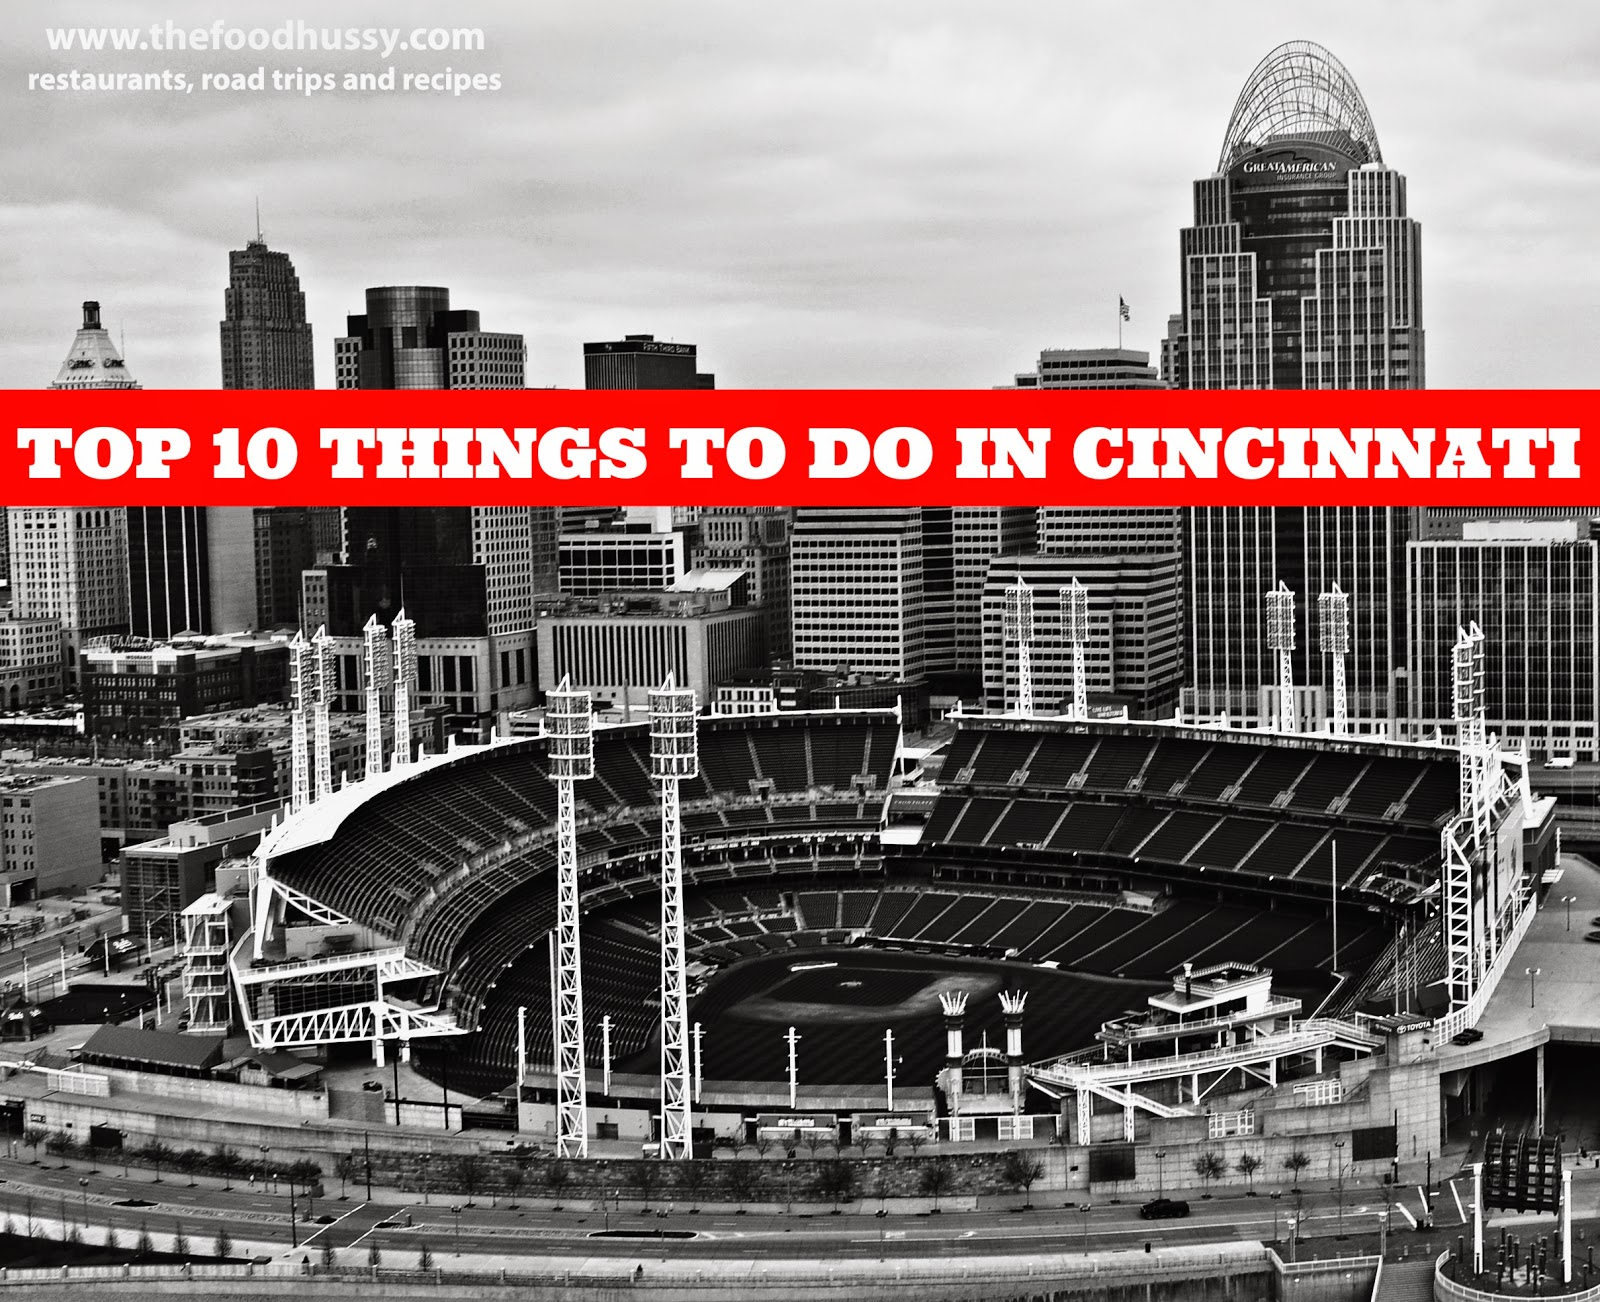 Top Ten Fun Things To Do In Cincinnati The Food Hussy - 10 things to see and do in cincinnati